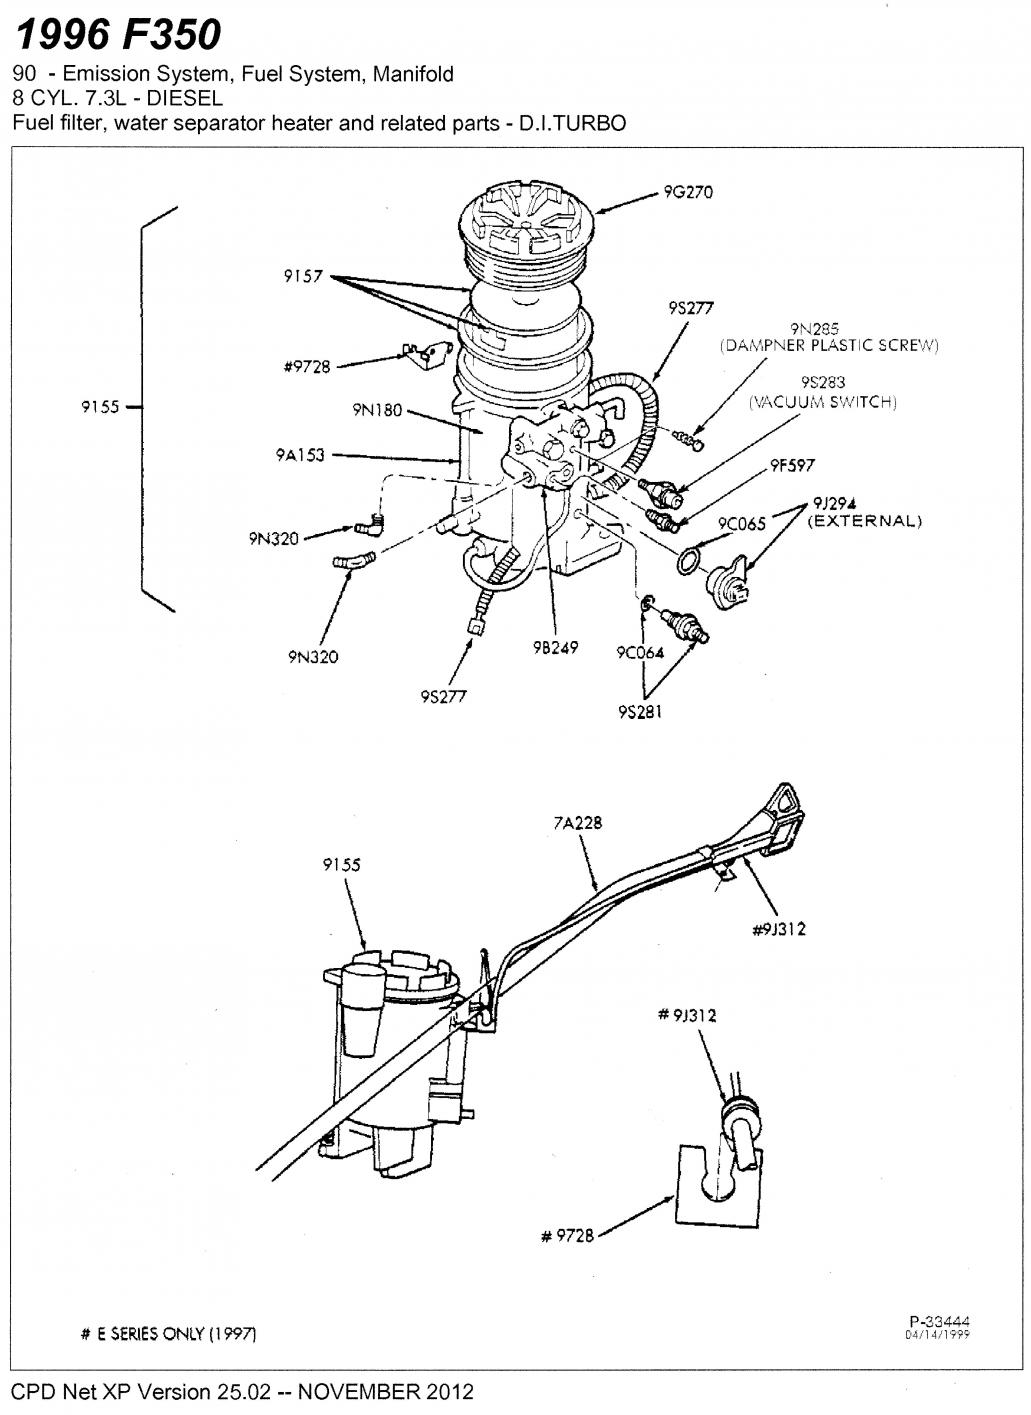 2001 Ford E450 7.3l Diesel Engine Wiring Diagram Transmission